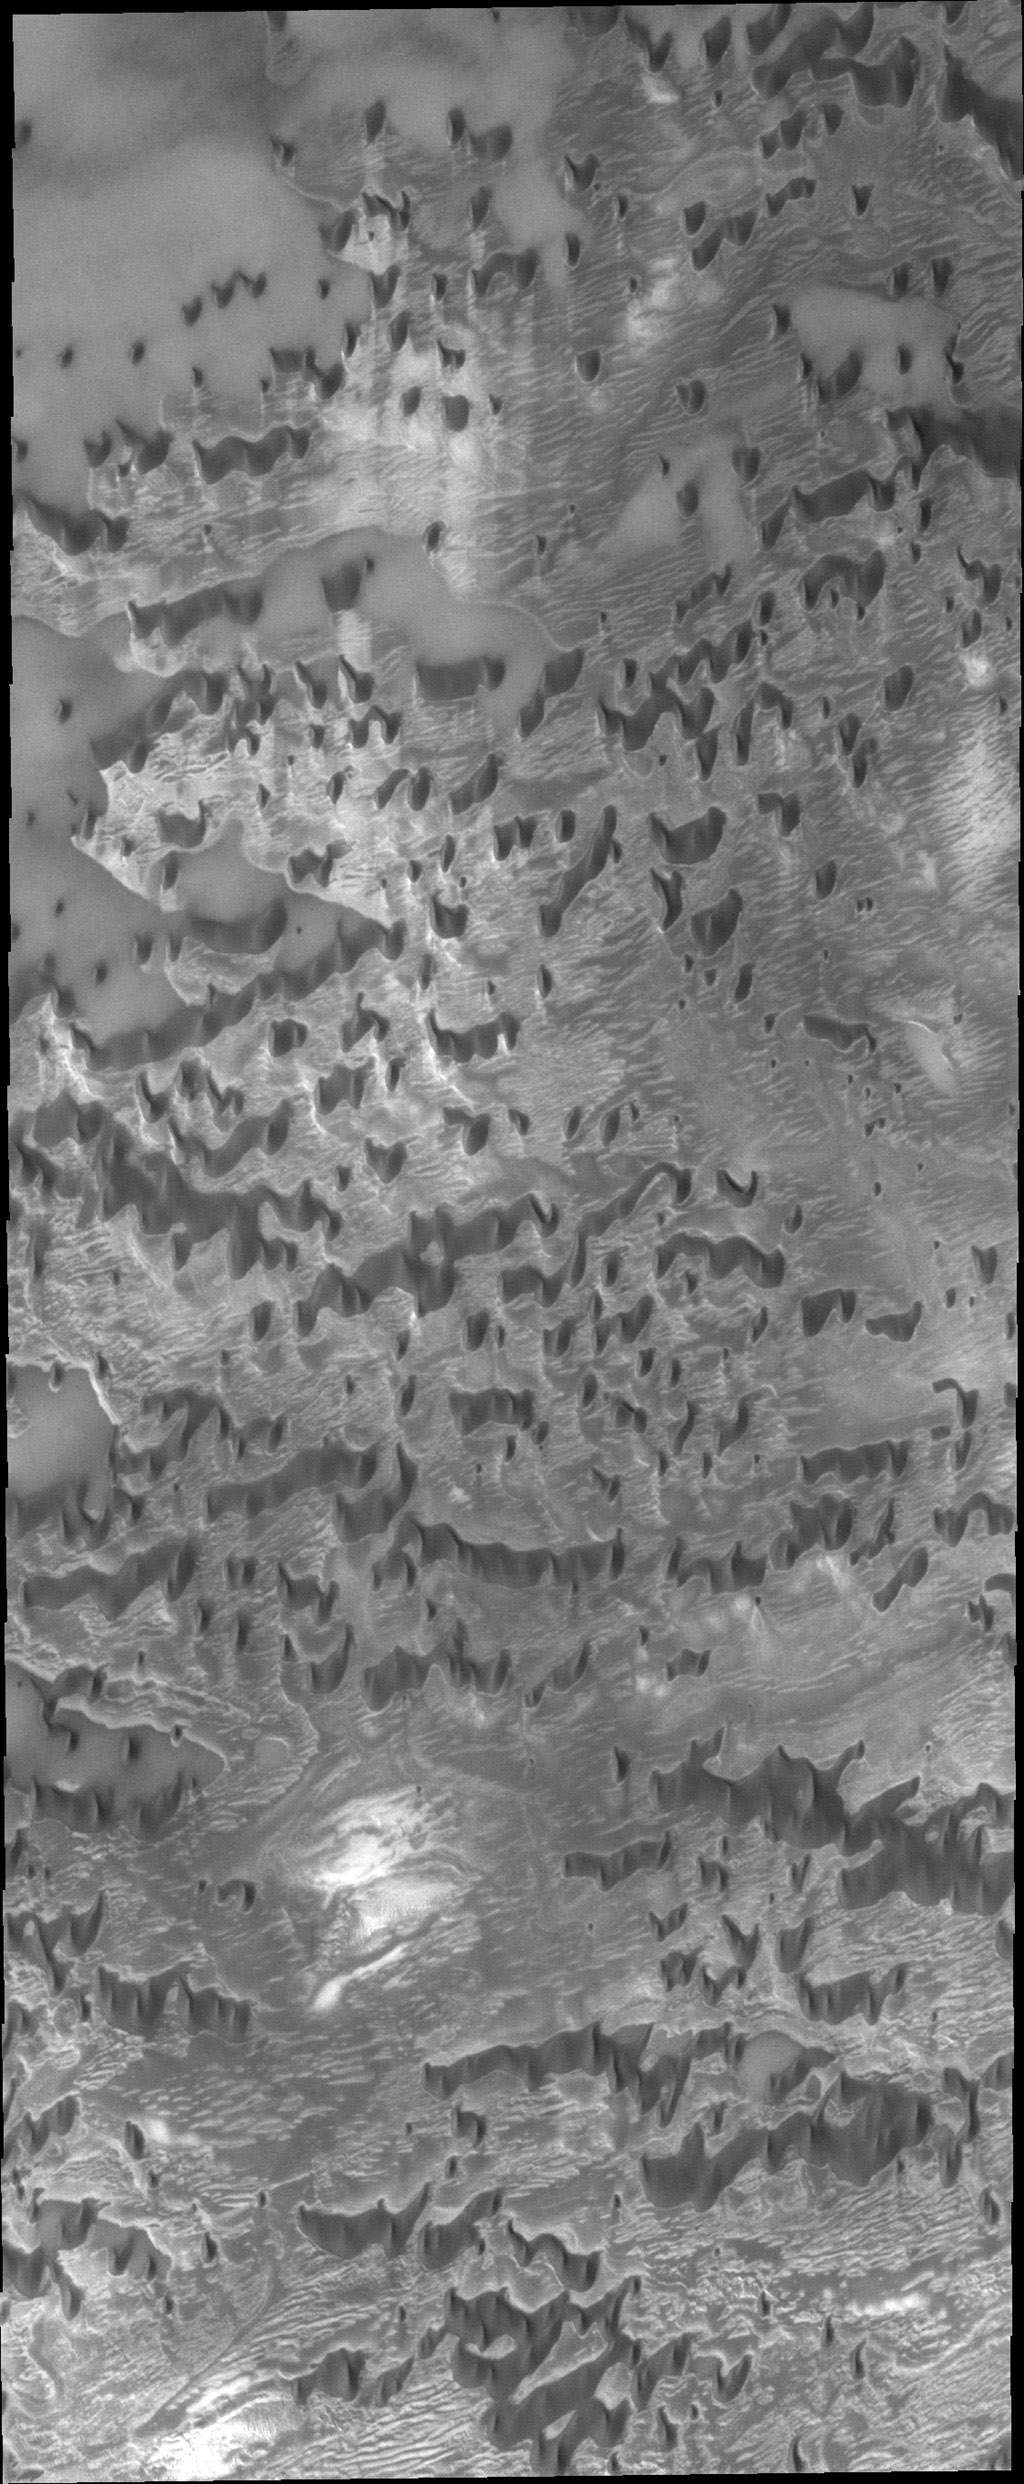 This image from NASA's 2001 Mars Odyssey spacecraft shows a part of Olympia Undae, the largest dune field near the north polar cap. In this region, the dunes are spaced far enough apart to show the detail of the surface they are moving across.